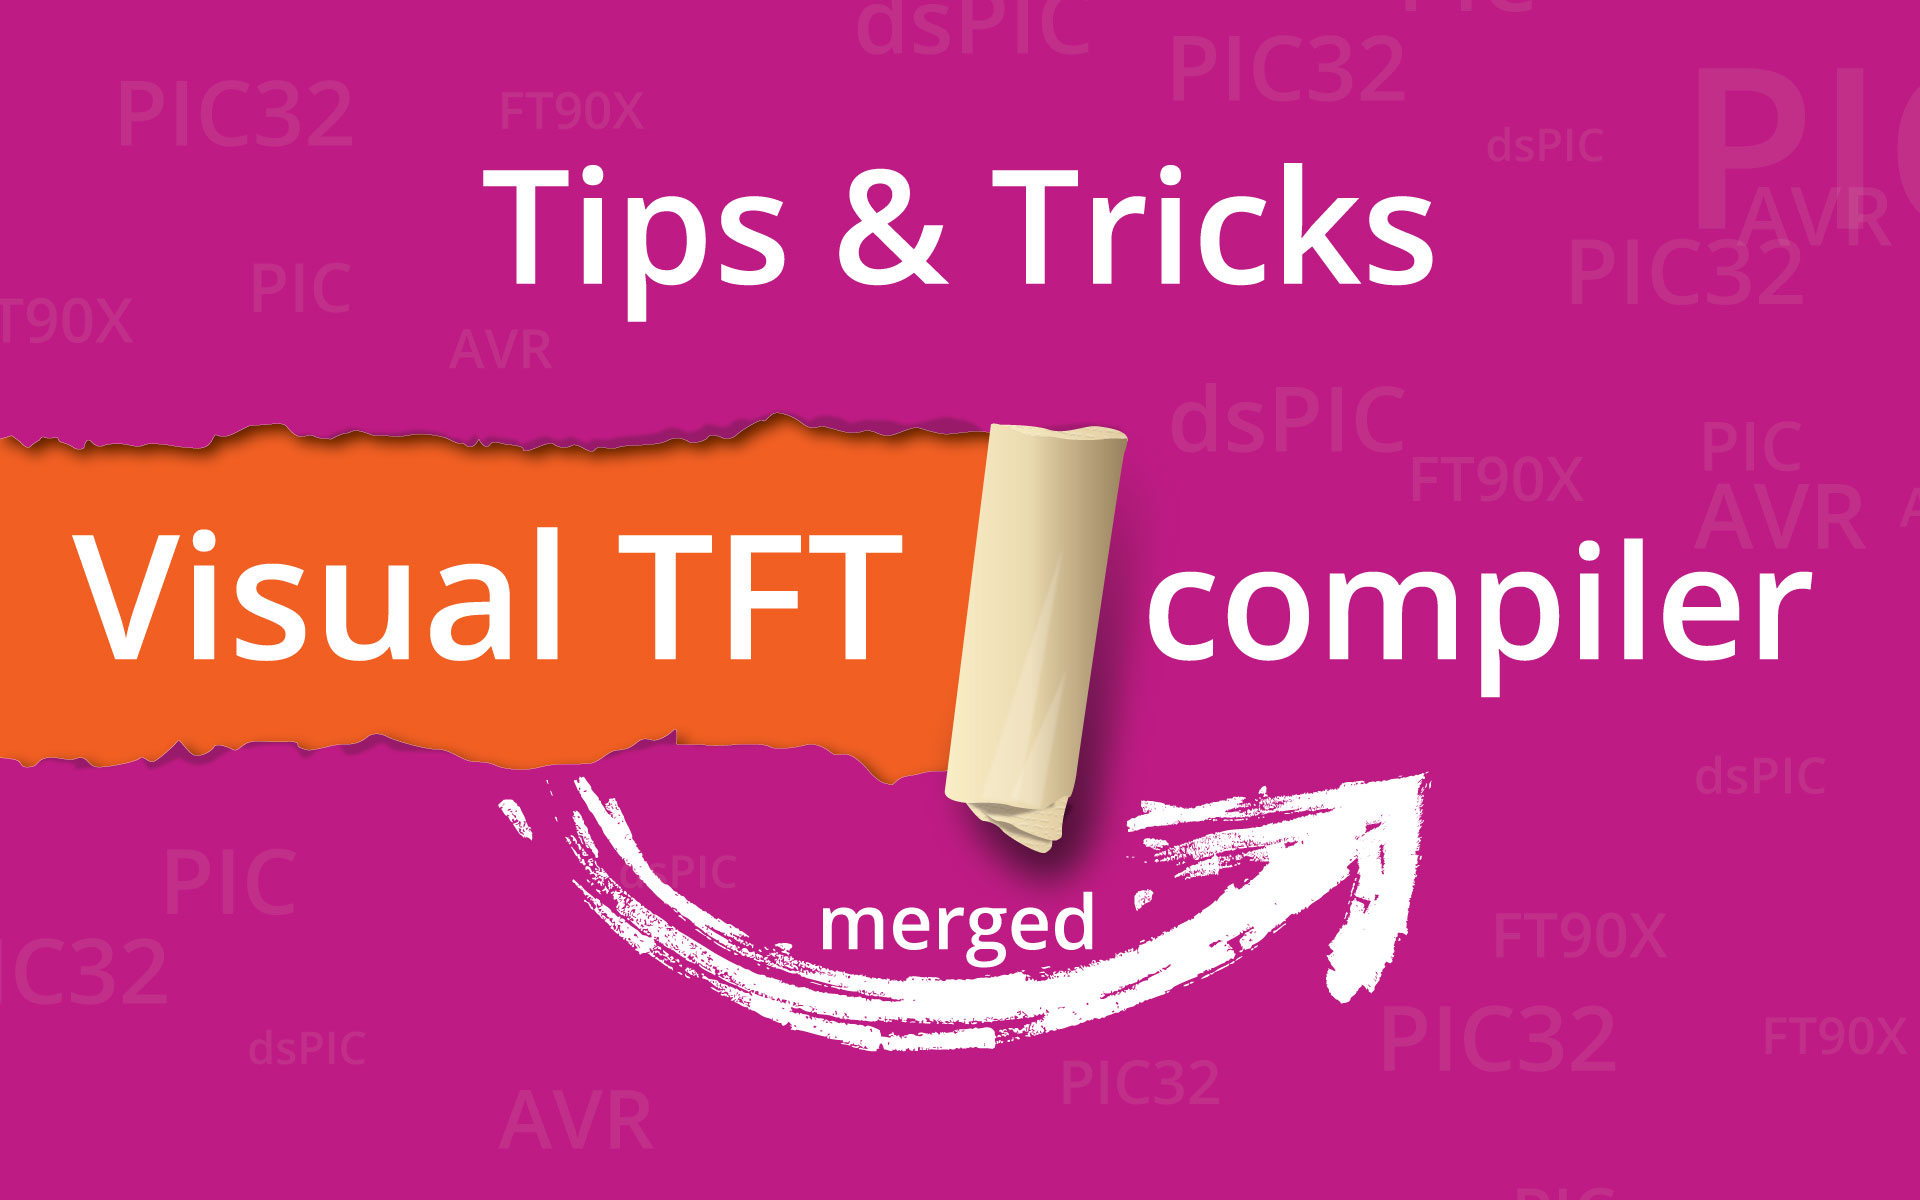 Tips&tricks for your next Visual TFT project